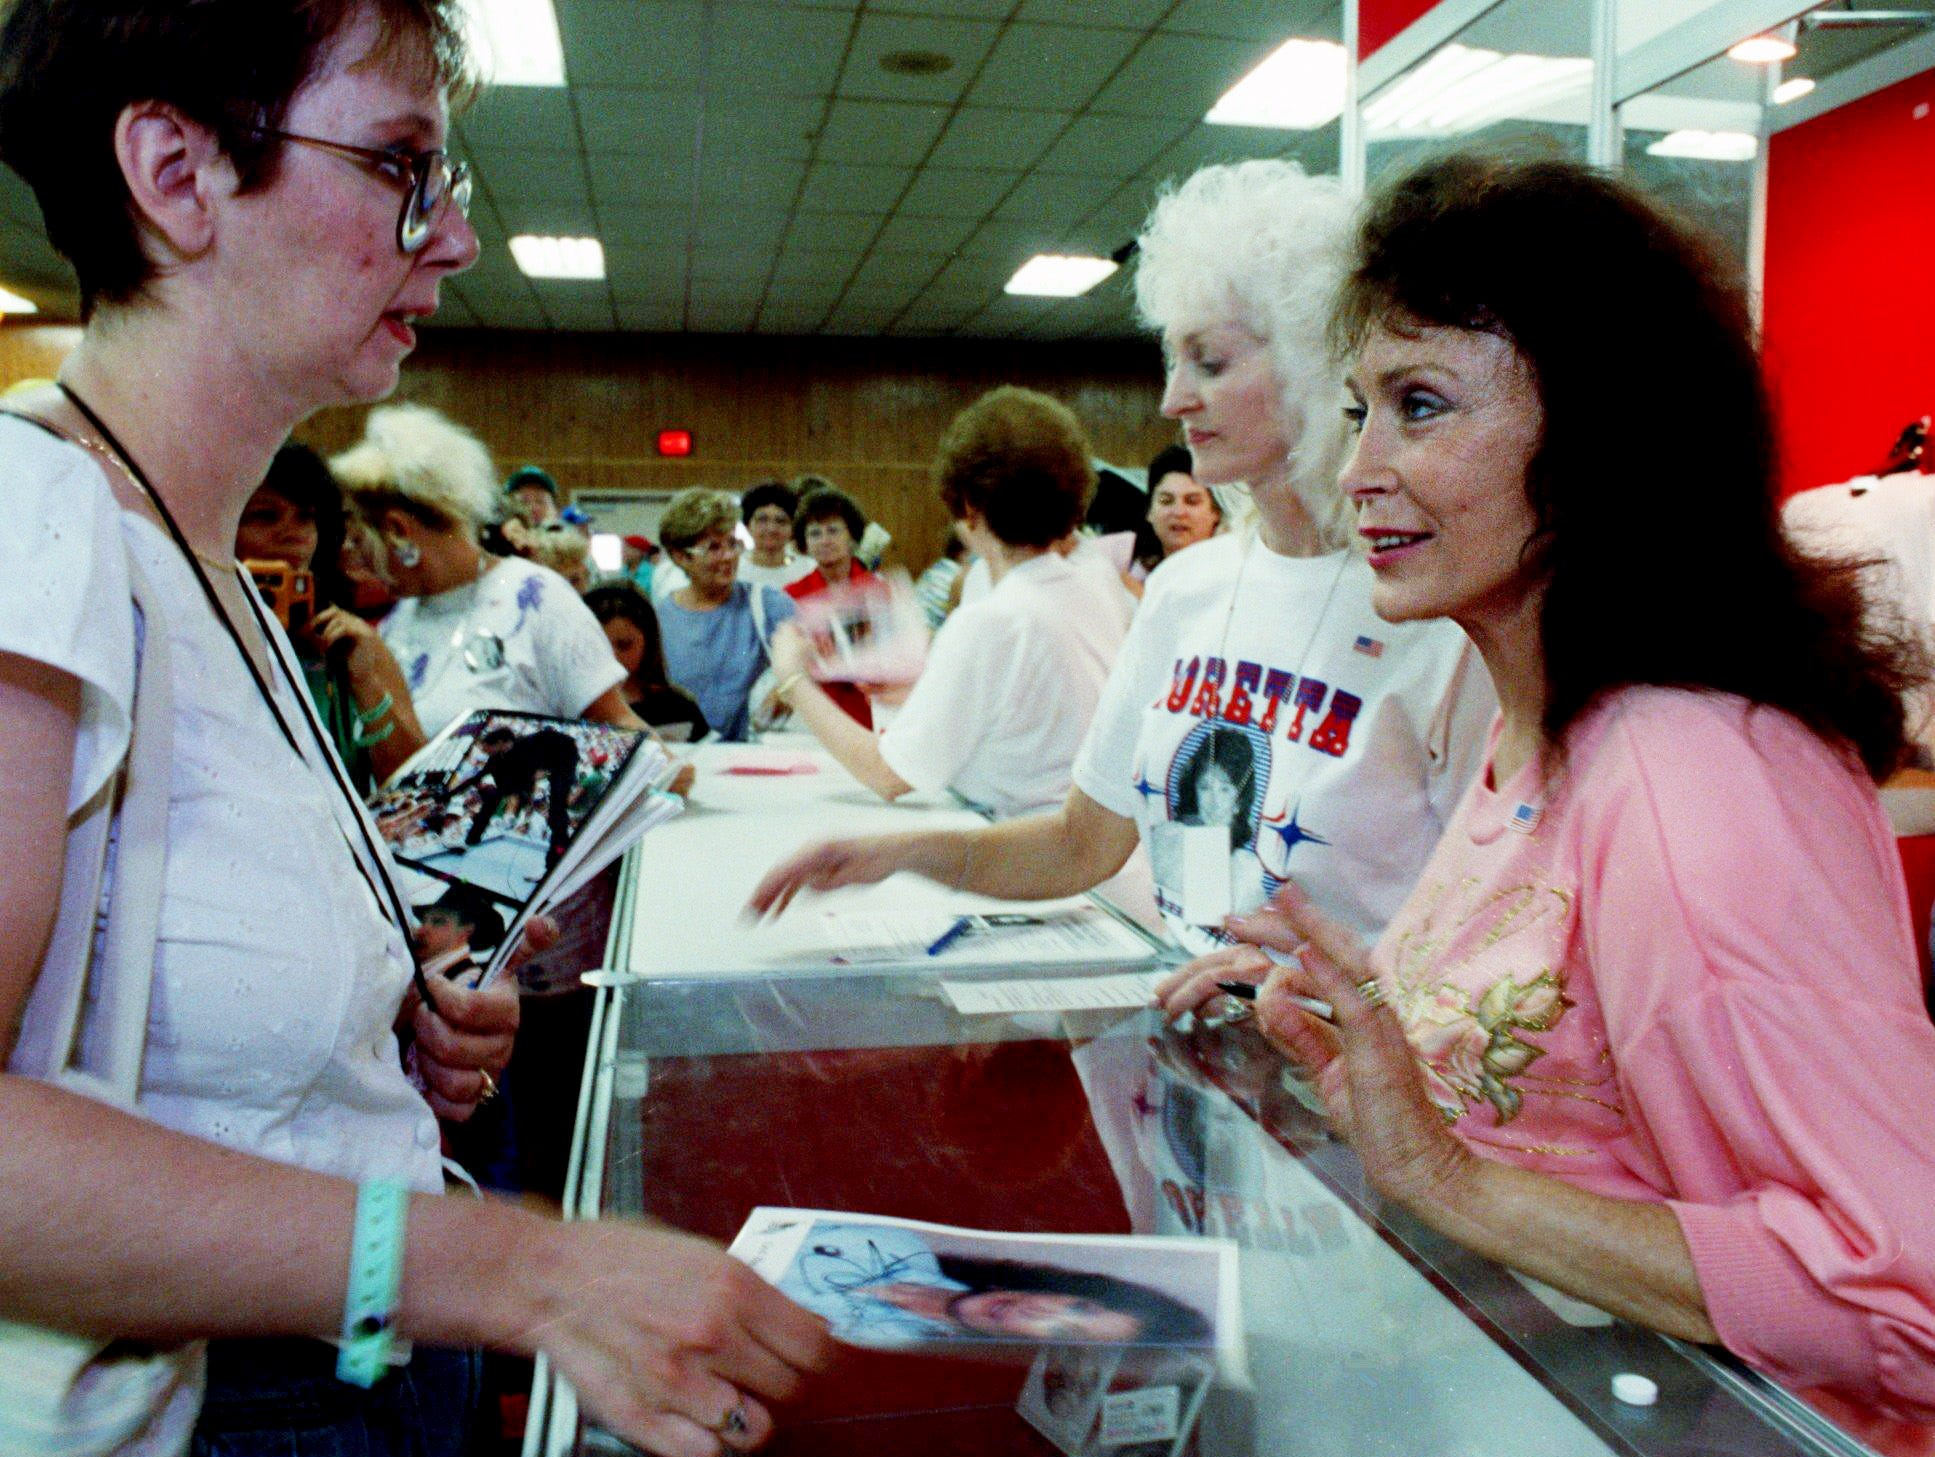 Loretta Lynn, right, greets the latest in a long line of fans, many of whom waited hour and hour to meet her at the Fan Fair get-together at the Tennessee State Fairgrounds June 11, 1991.